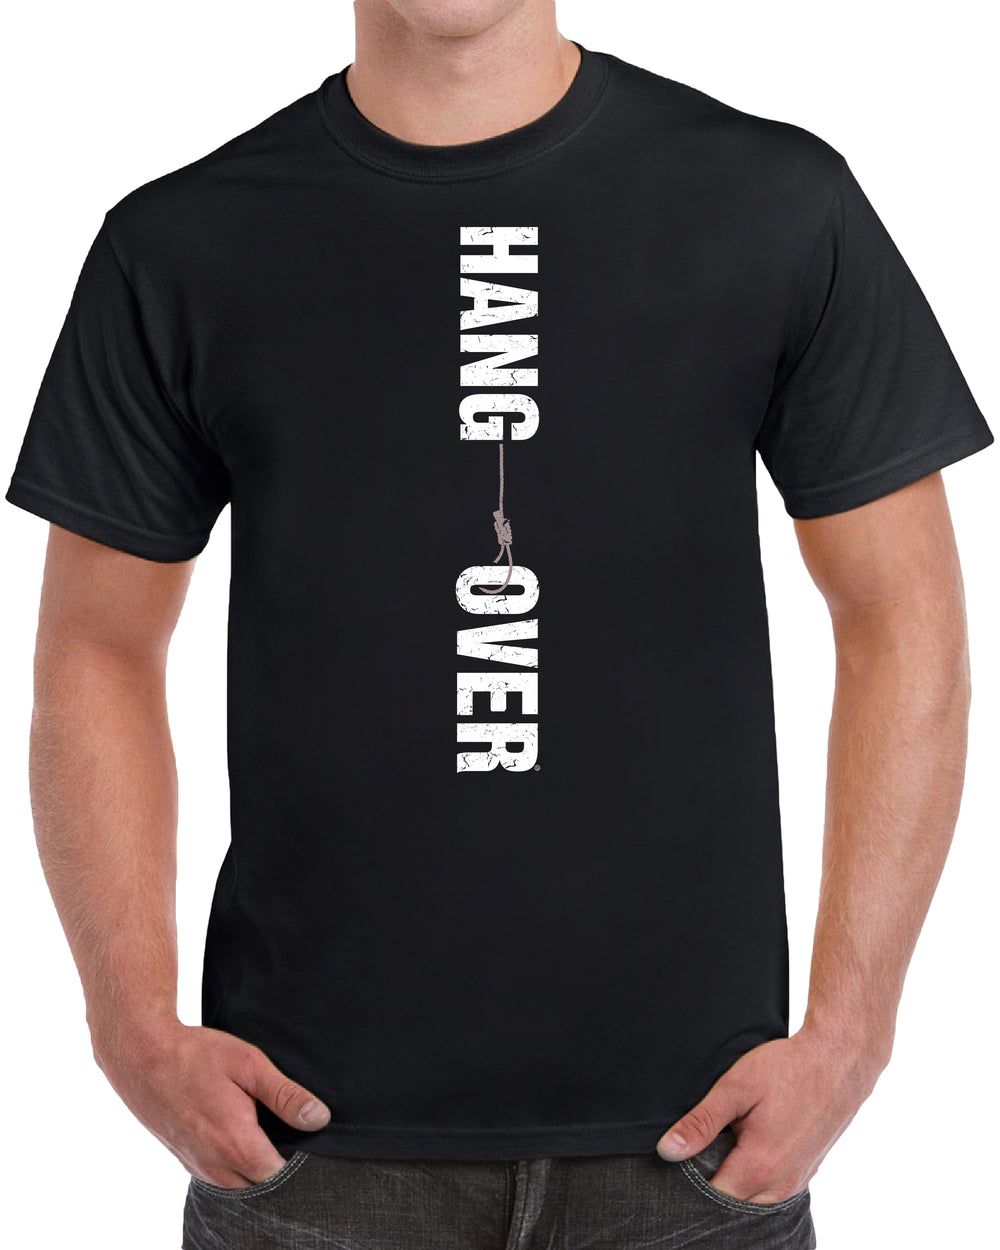 Hang Over - Distressed Print